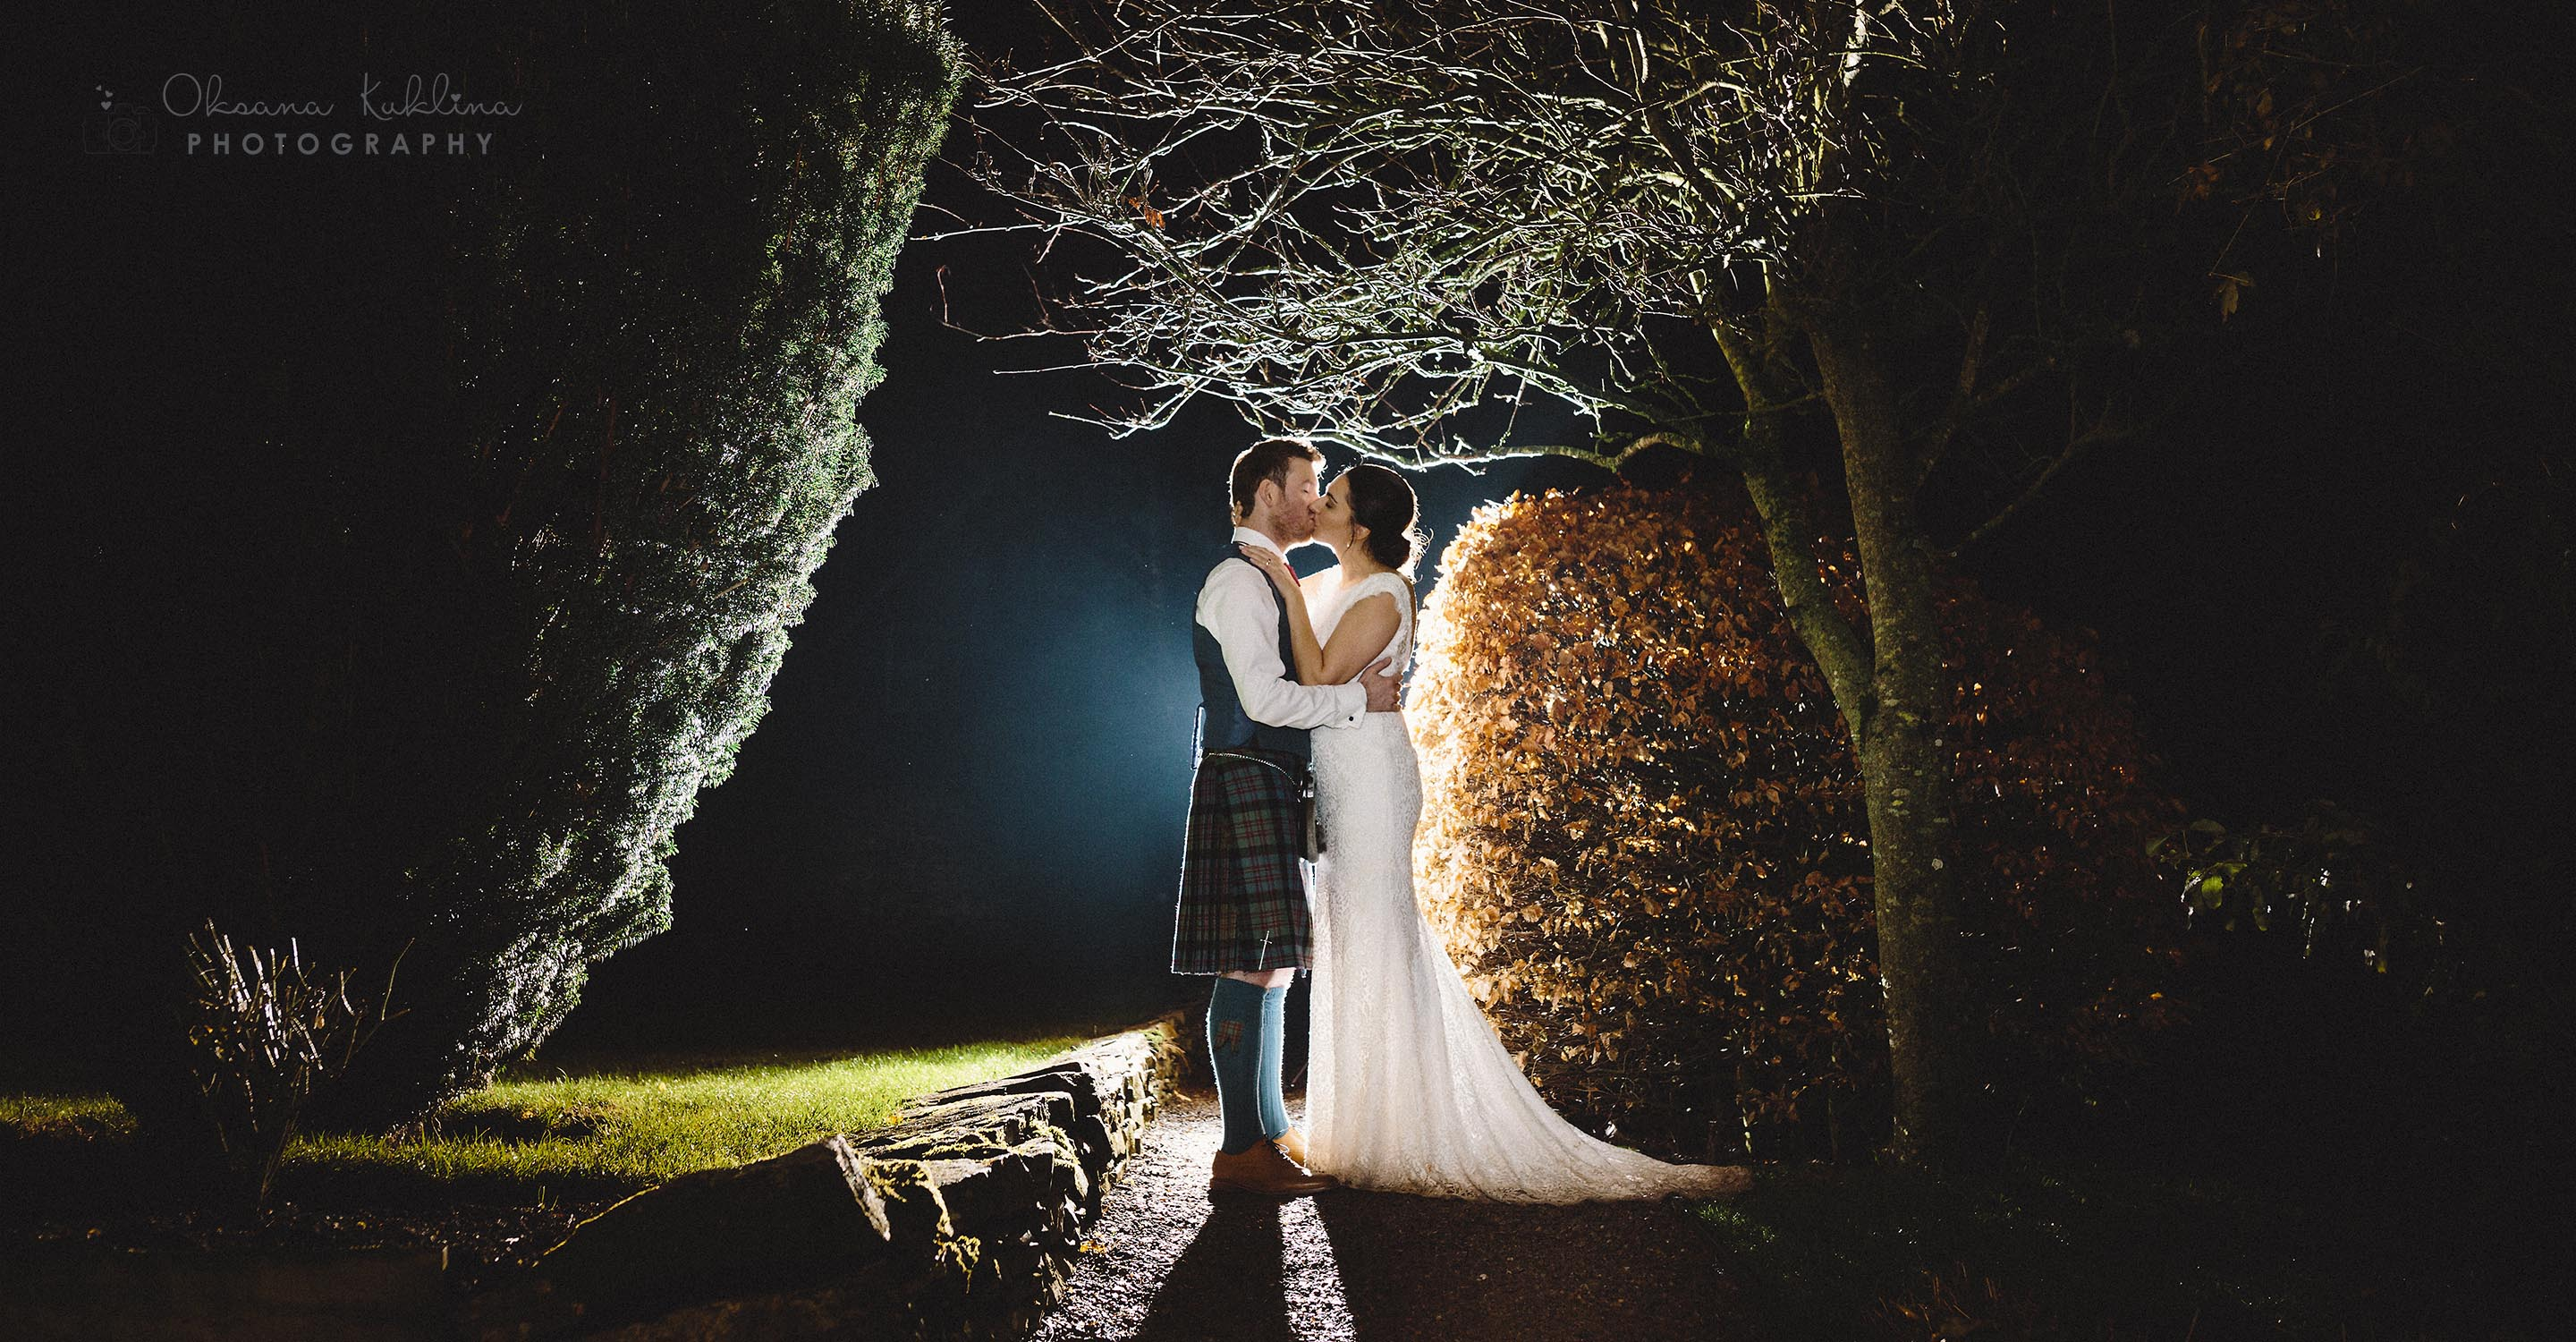 Aikwood Tower Wedding Photographer - Scottish Borders wedding photography